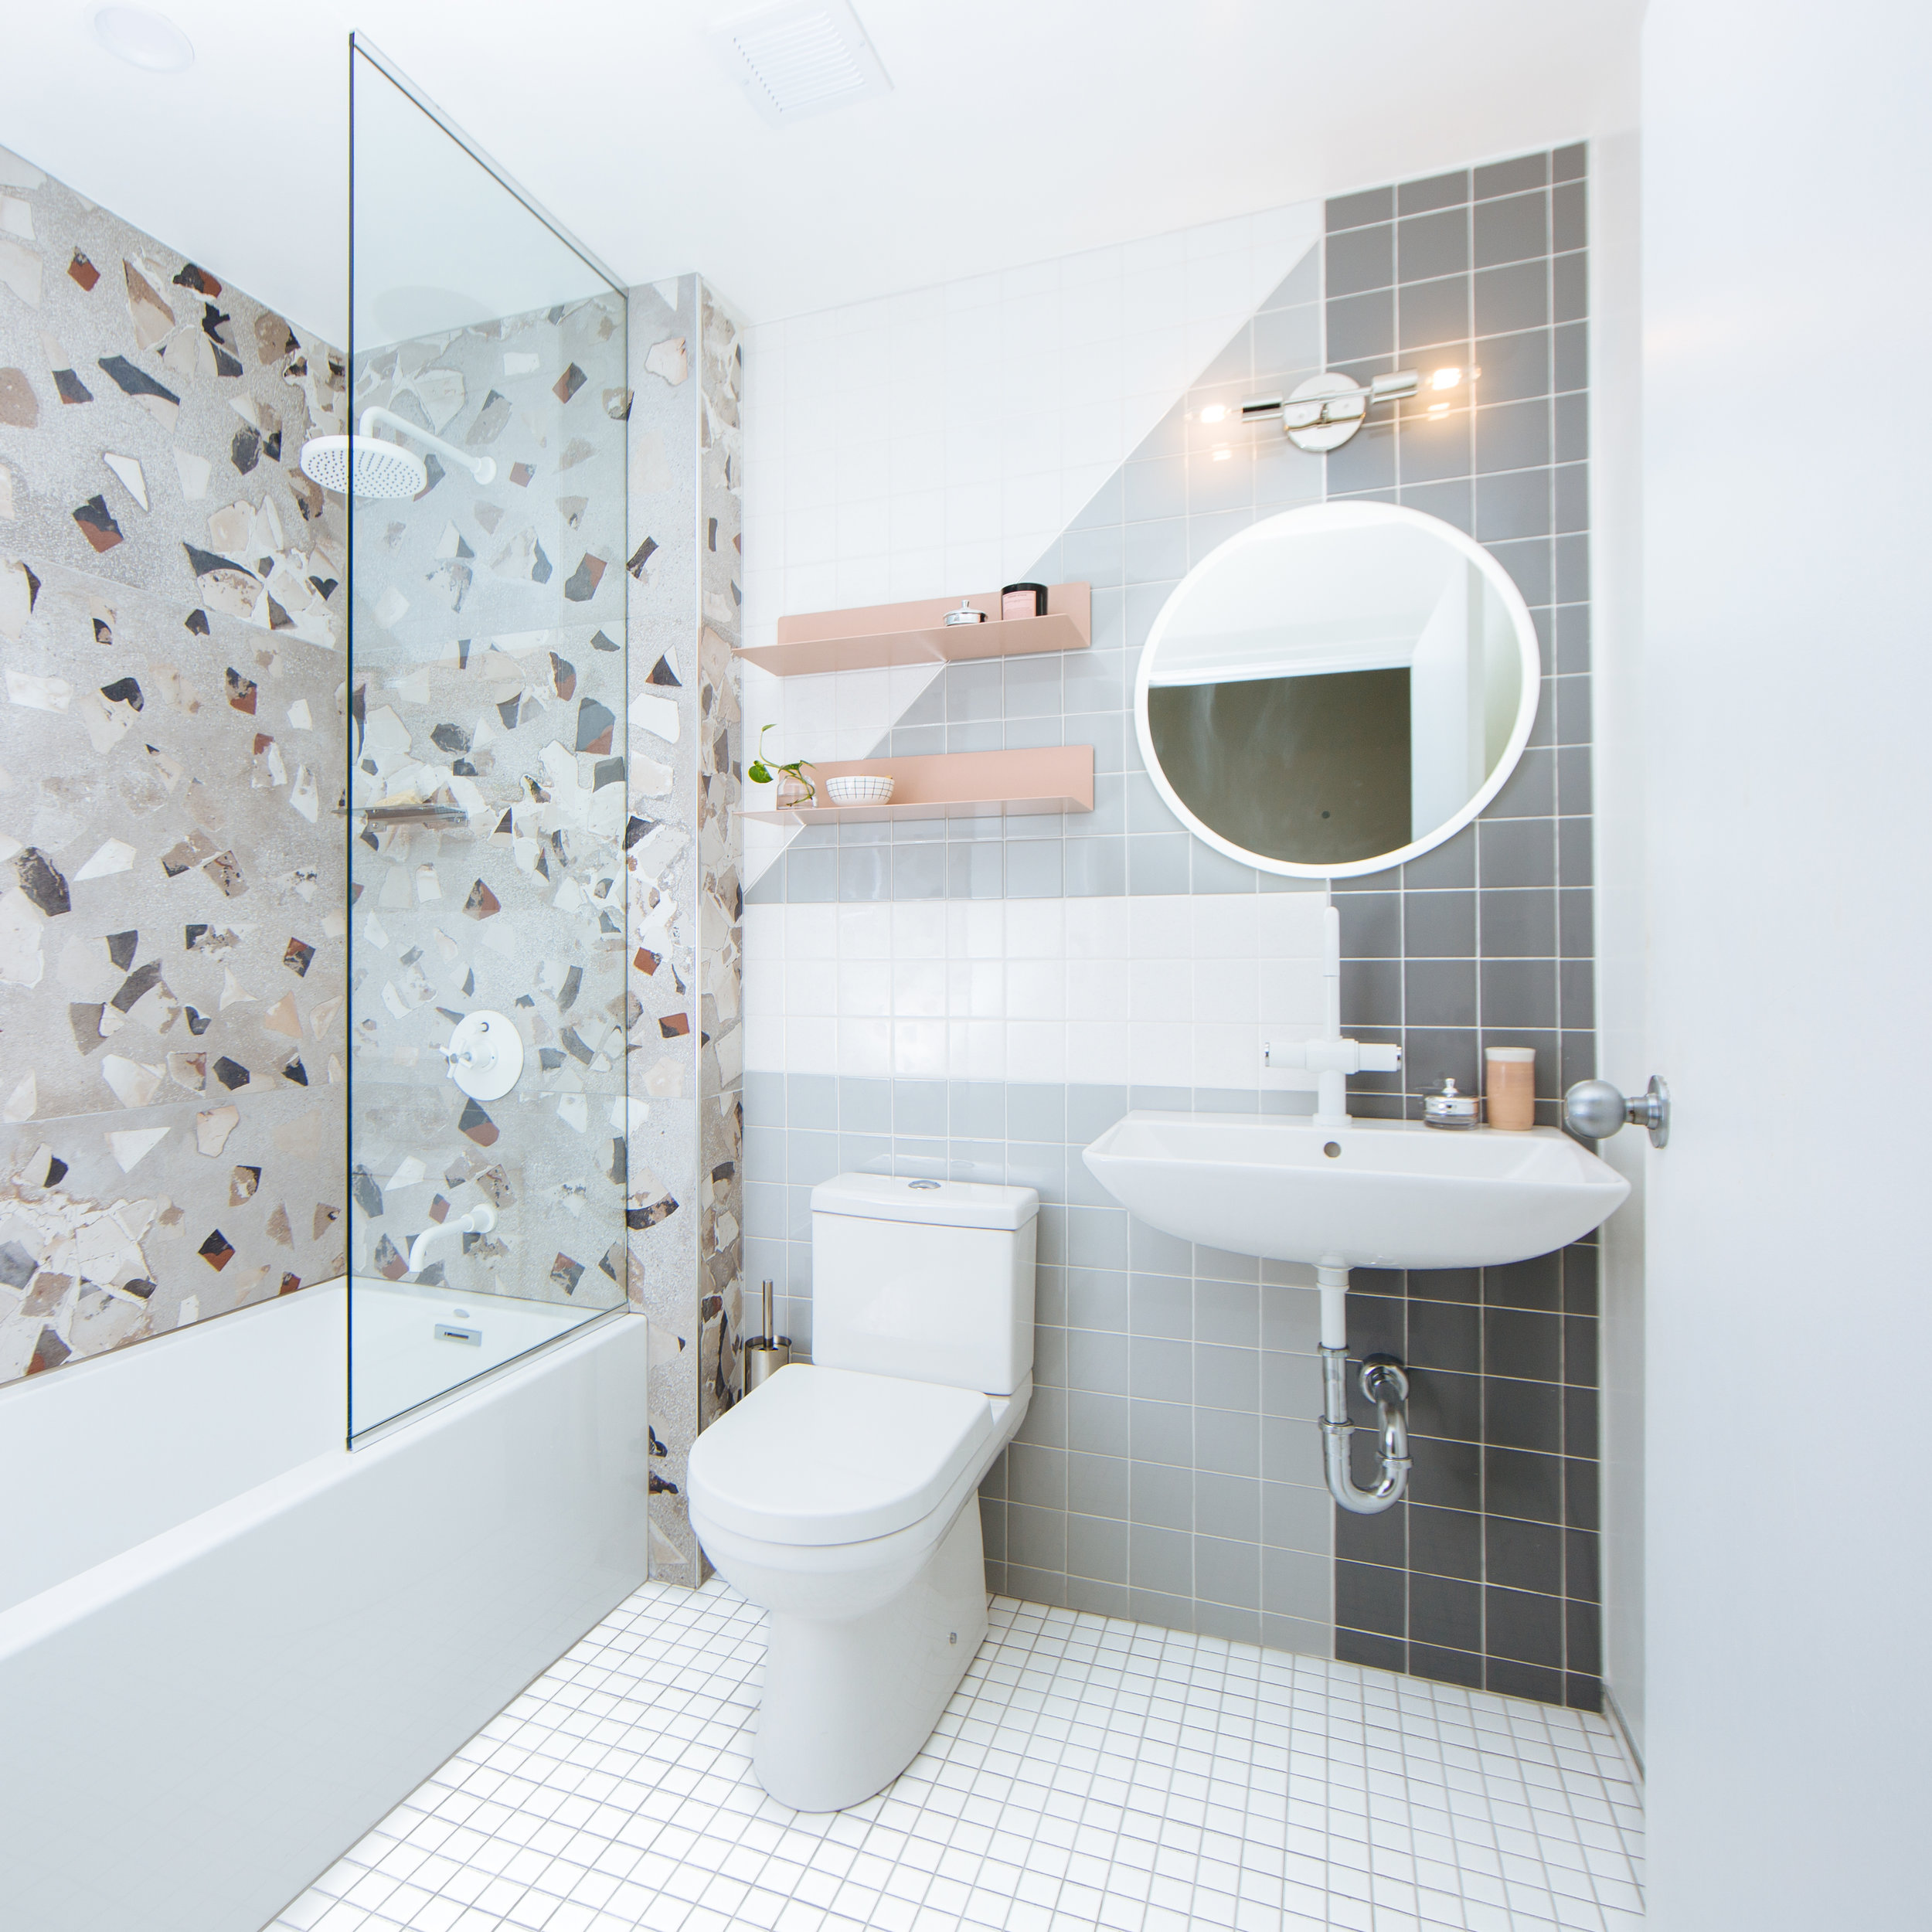 detroit bathroom remodel interior design